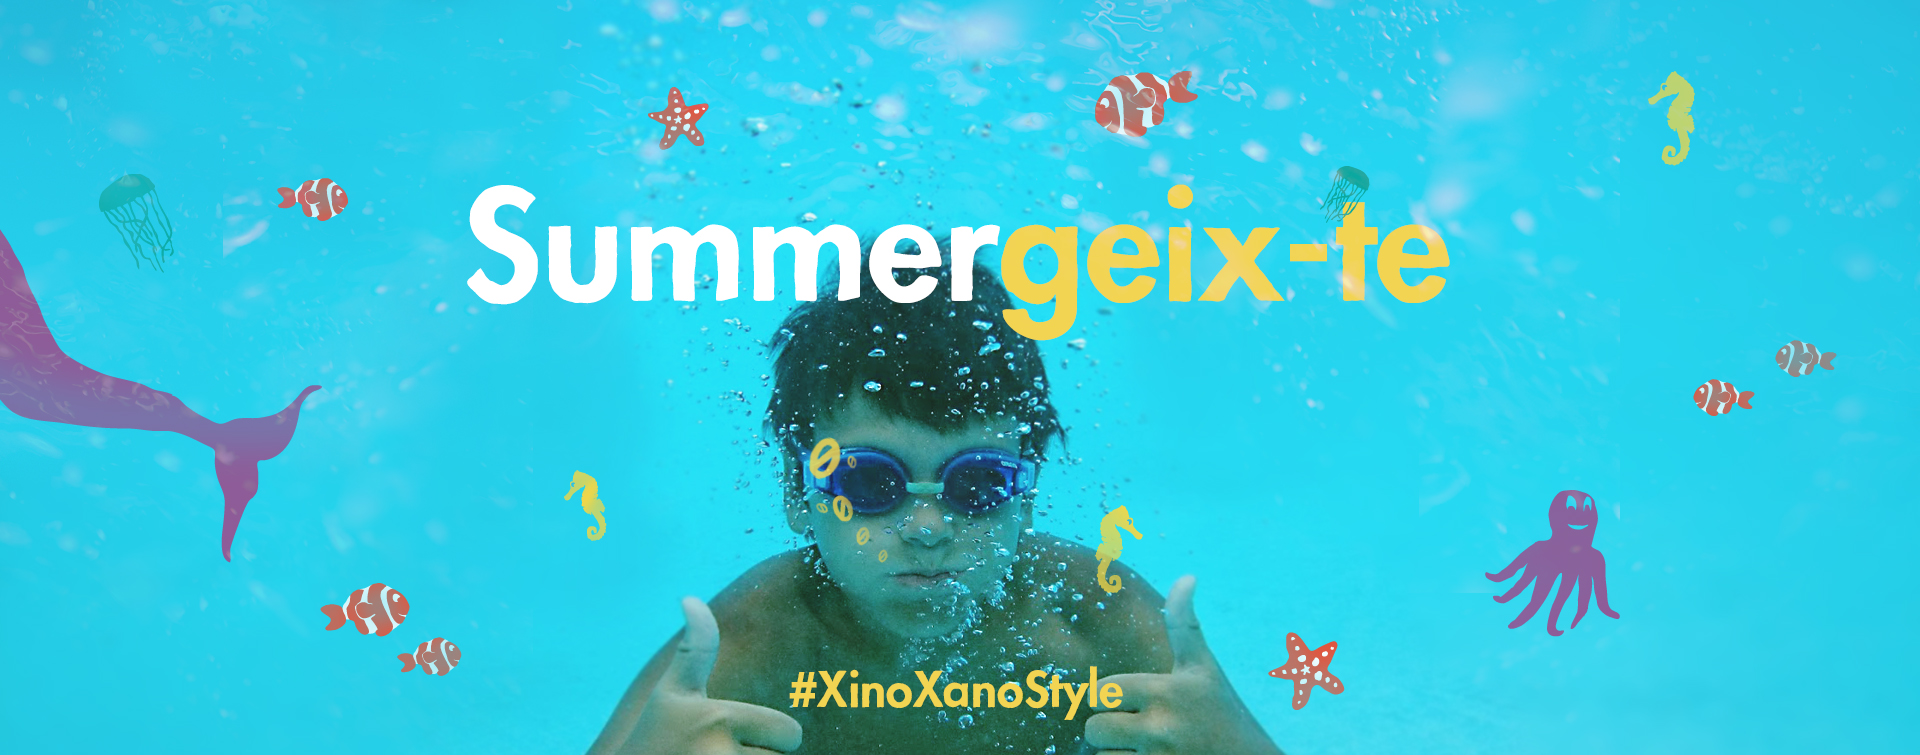 SLIDER_summergeixte